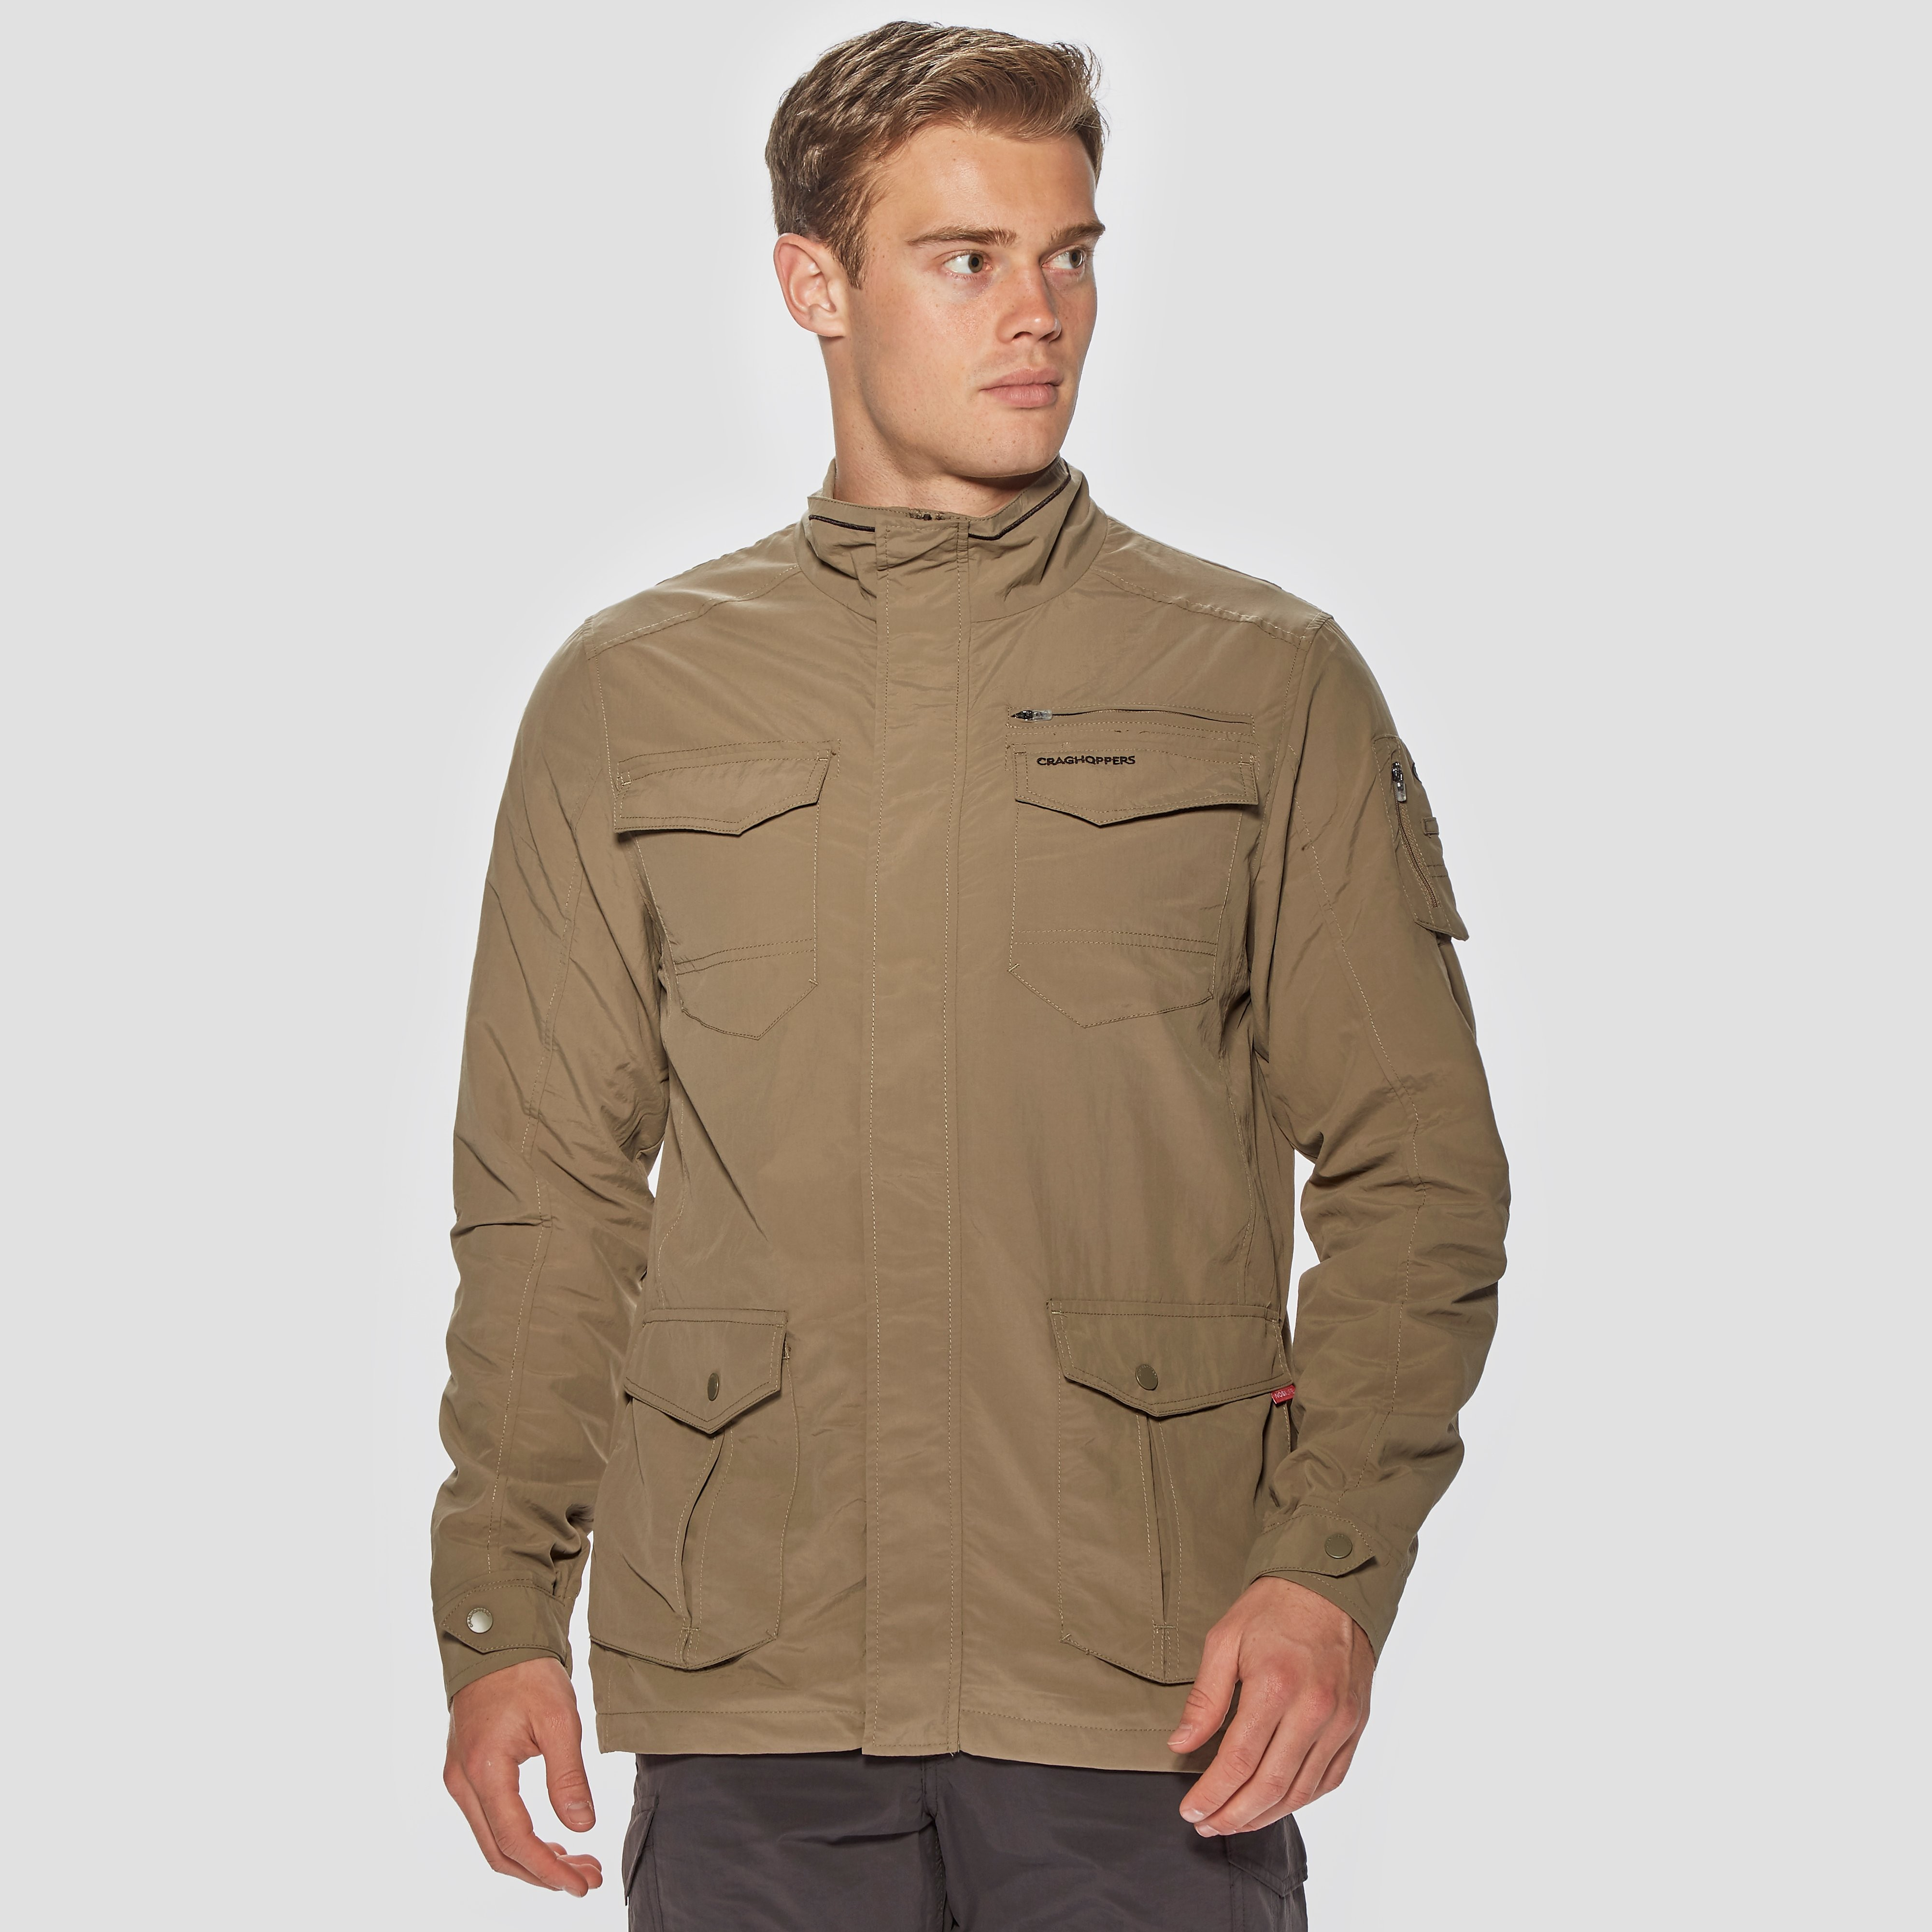 Craghoppers NosiLife Reversible Adventure Men's Jacket